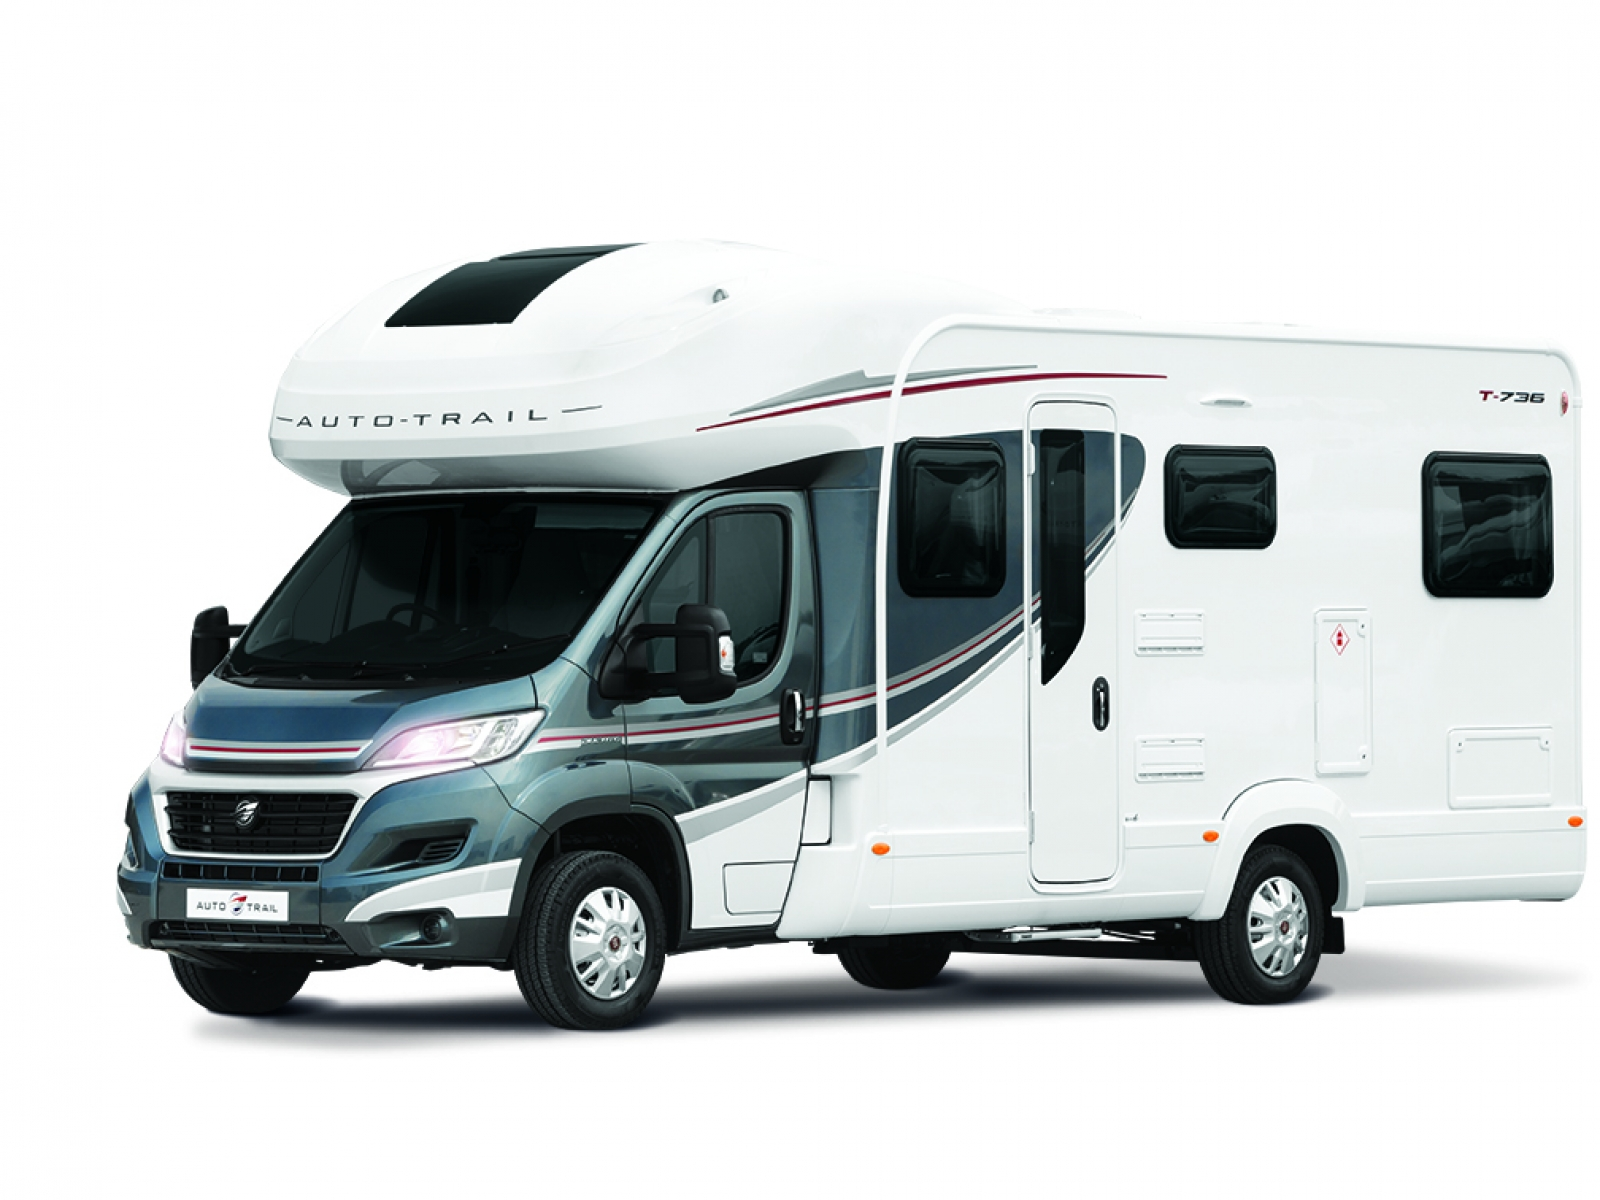 Auto-Trail Tribute T-736 image